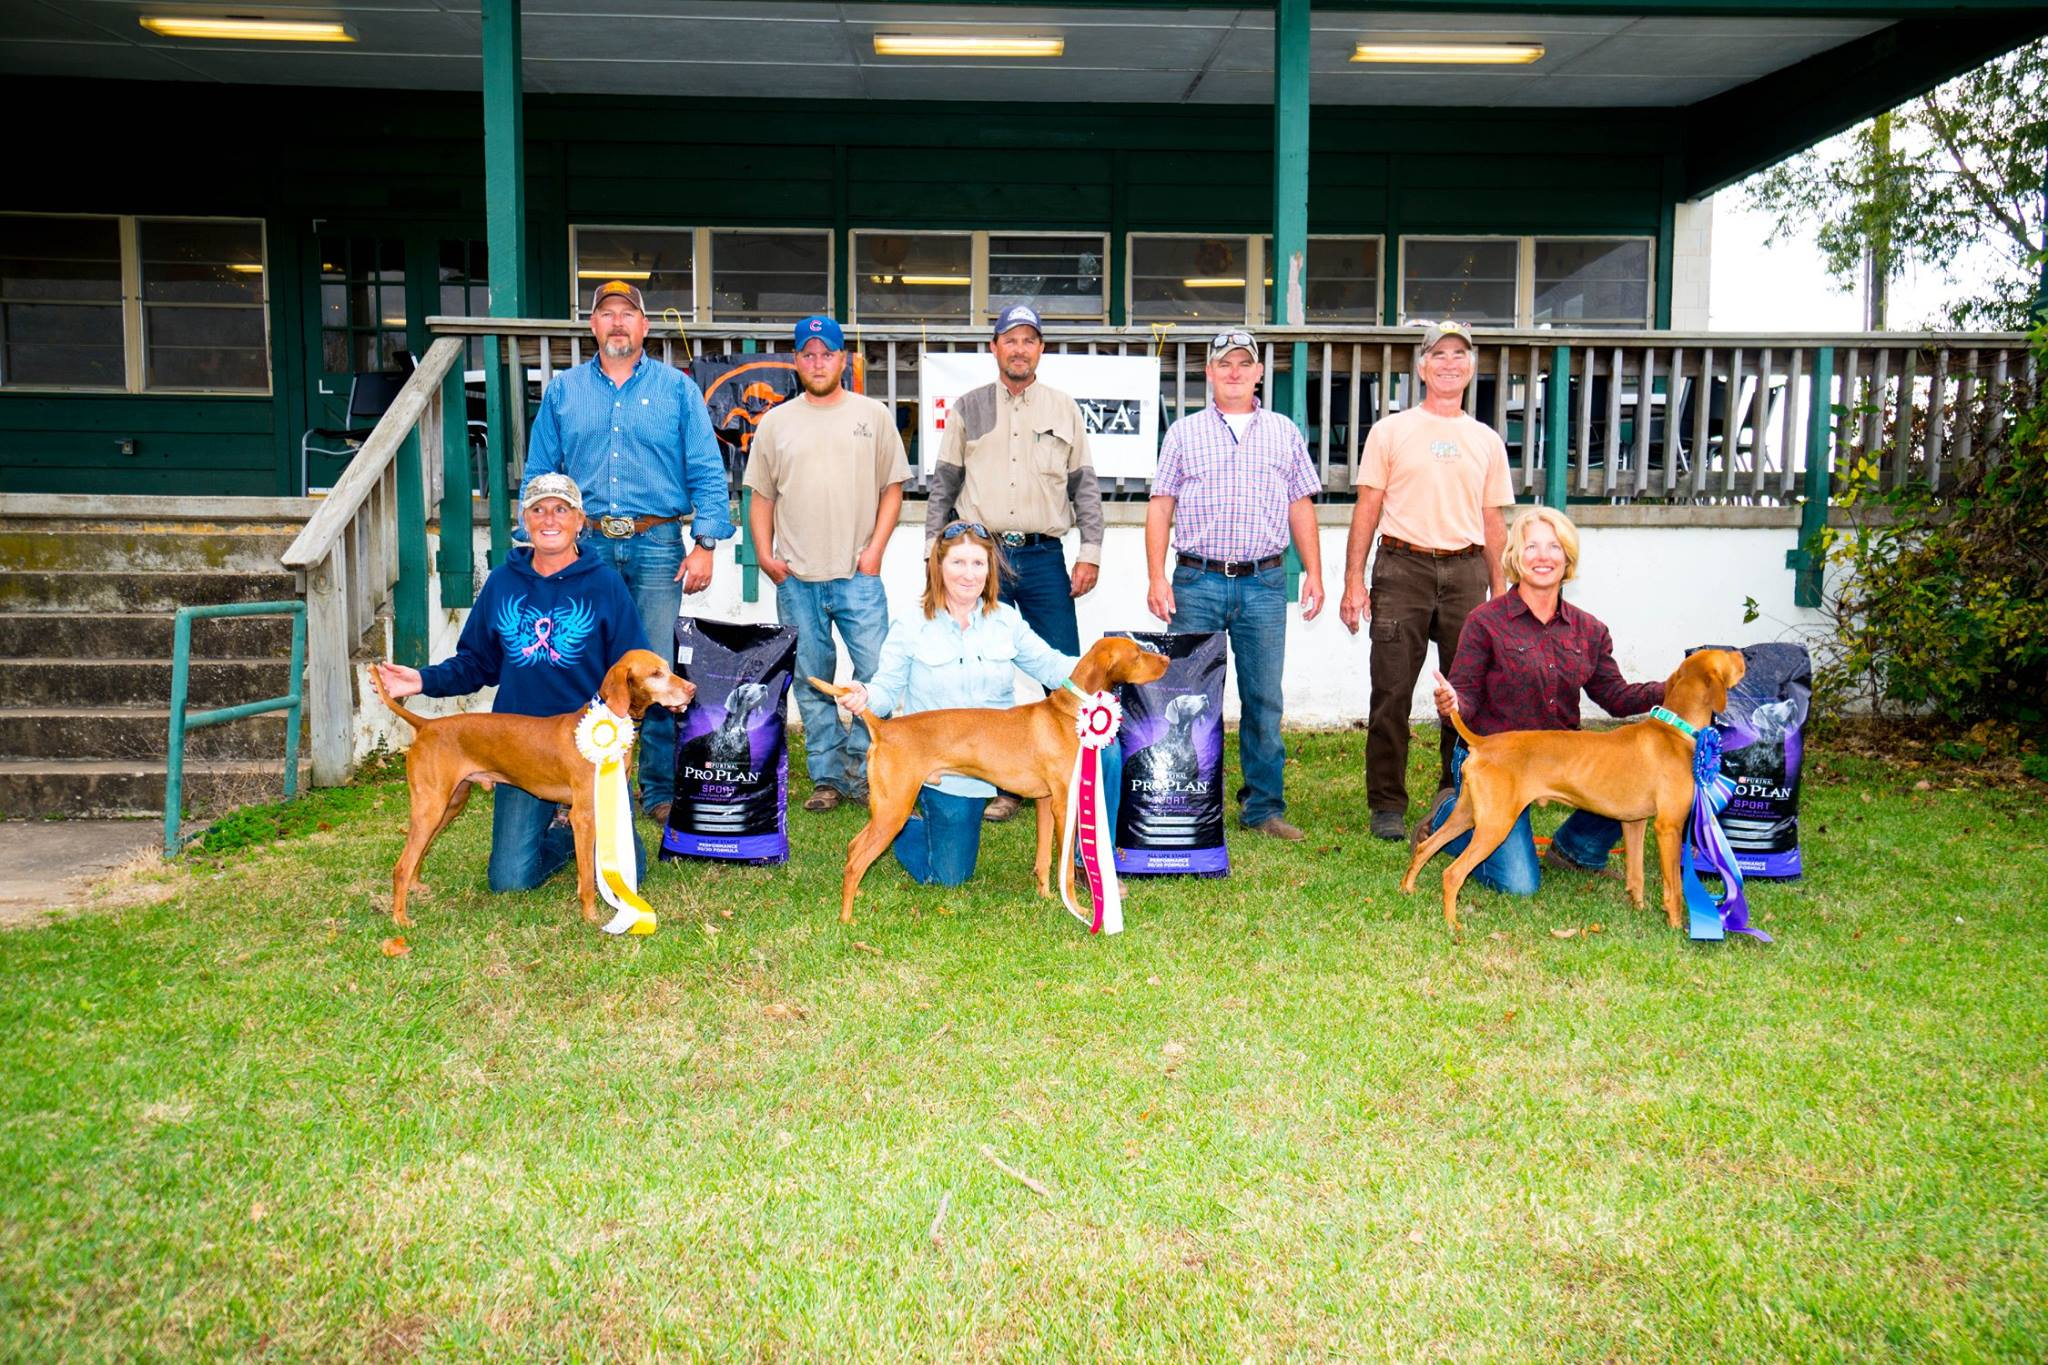 2016 cENTRAL us vIZSLA ASSOCIATION cLASSIC bULLET 2ND RUNNER UP